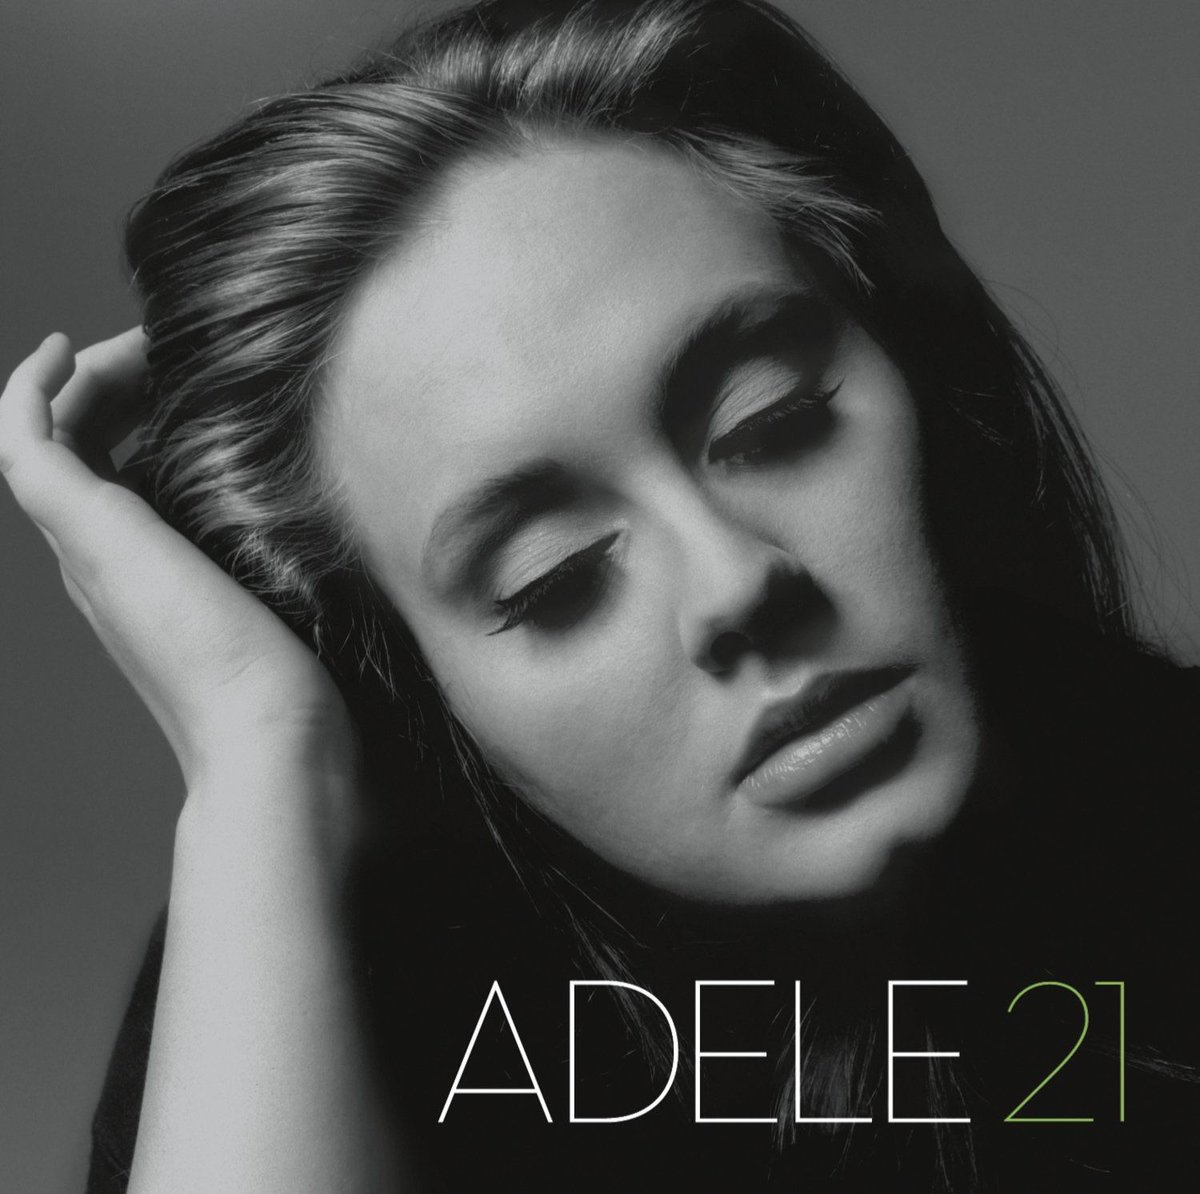 10 years ago today, @Adele released '21.'  The critically acclaimed LP became the biggest-selling album of the 21st century, with over 31 MILLION copies sold globally. It spawned three #1 singles in the US, won seven #Grammys and ranks at #1 on the Billboard 200 all-time chart.